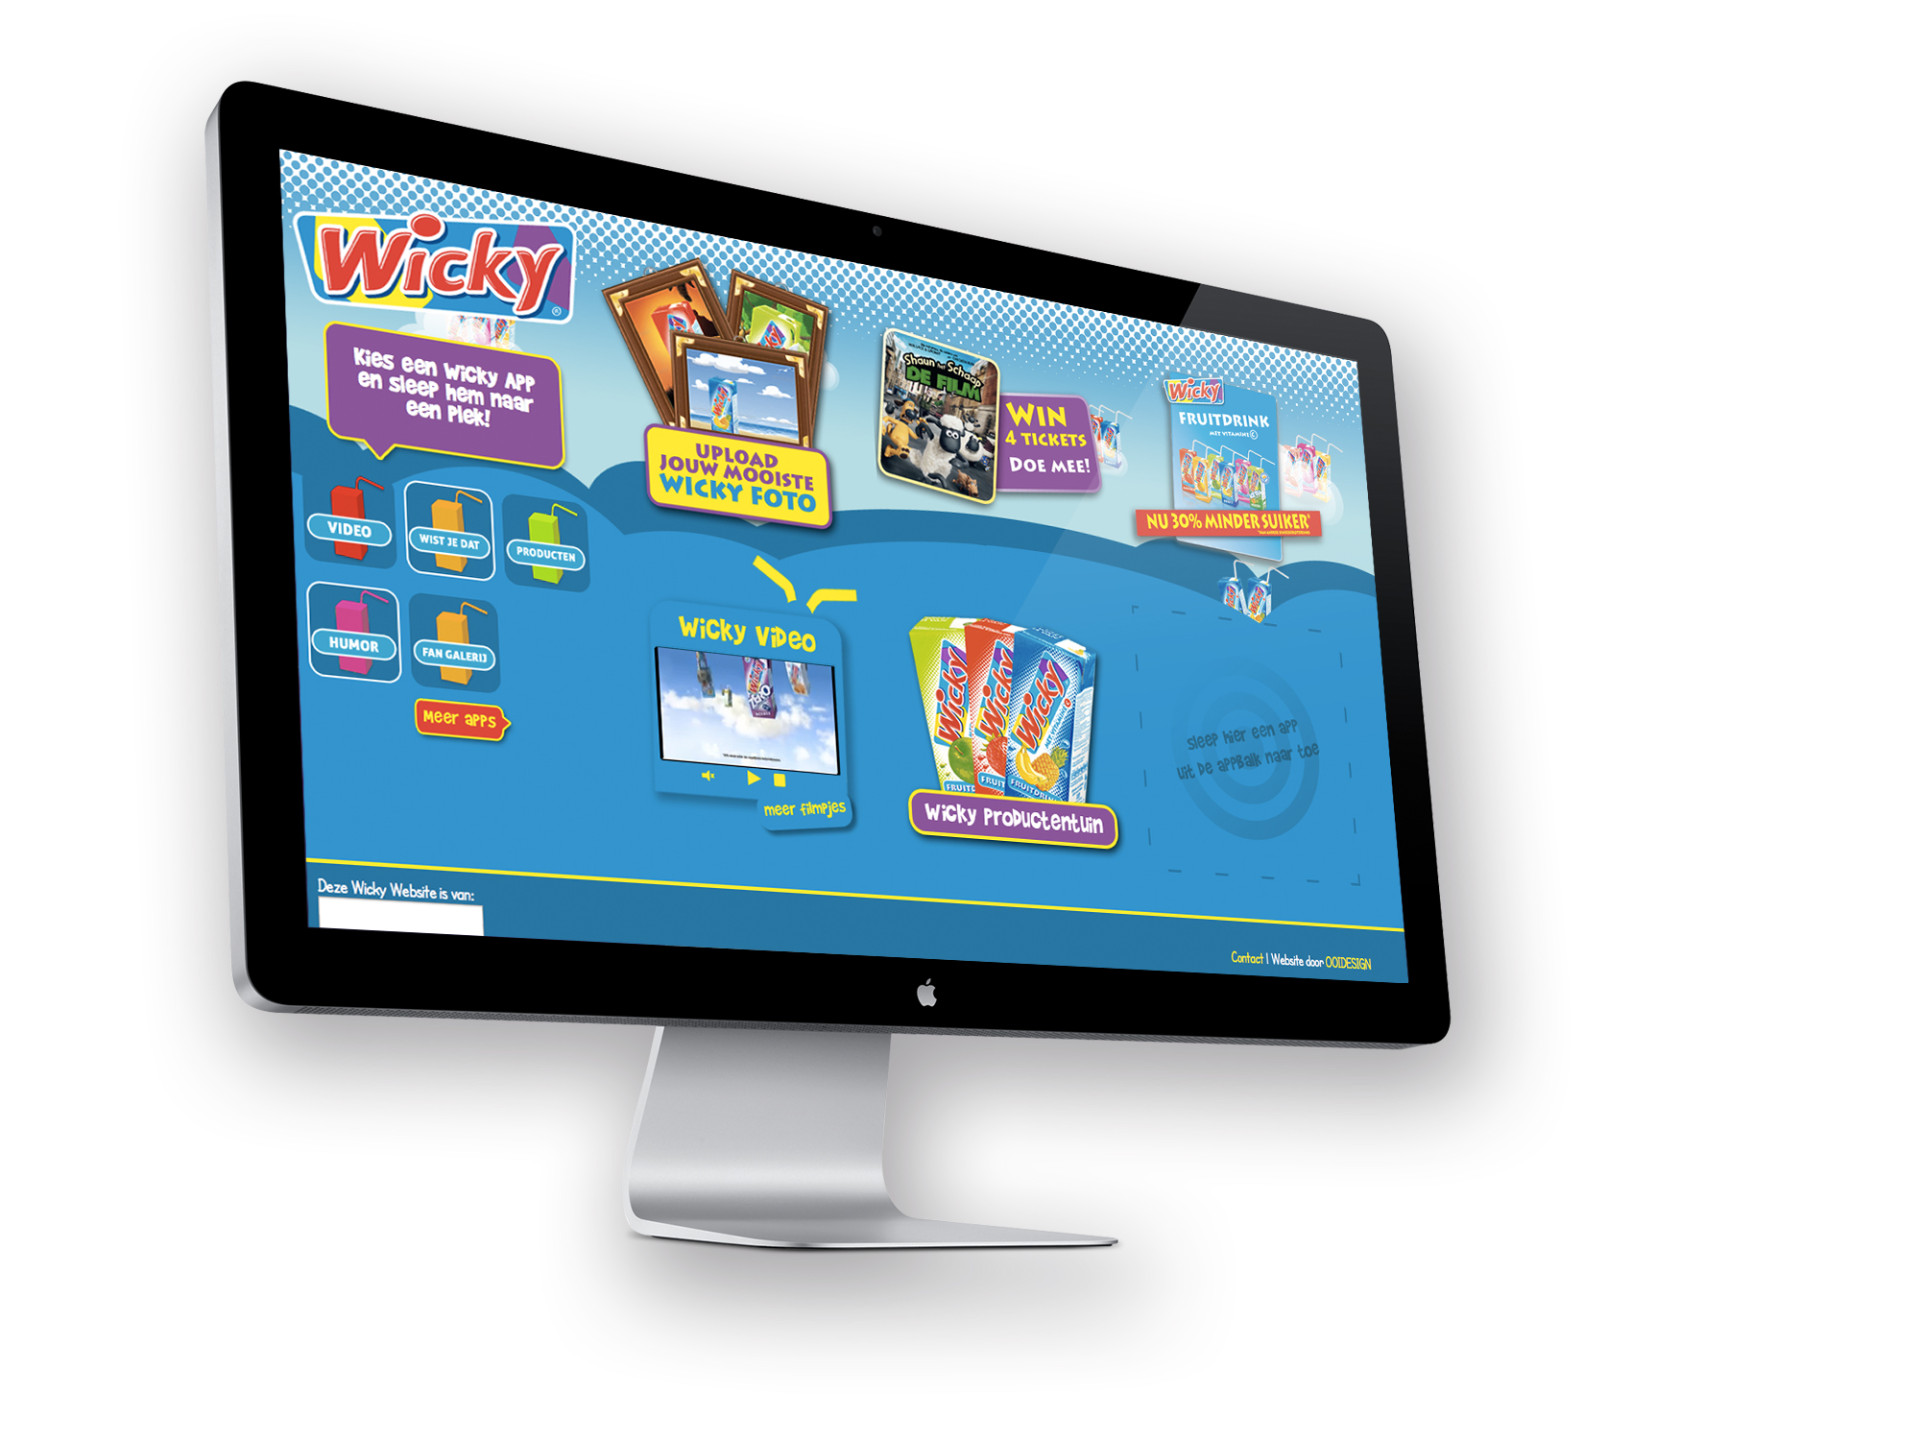 Wicky website